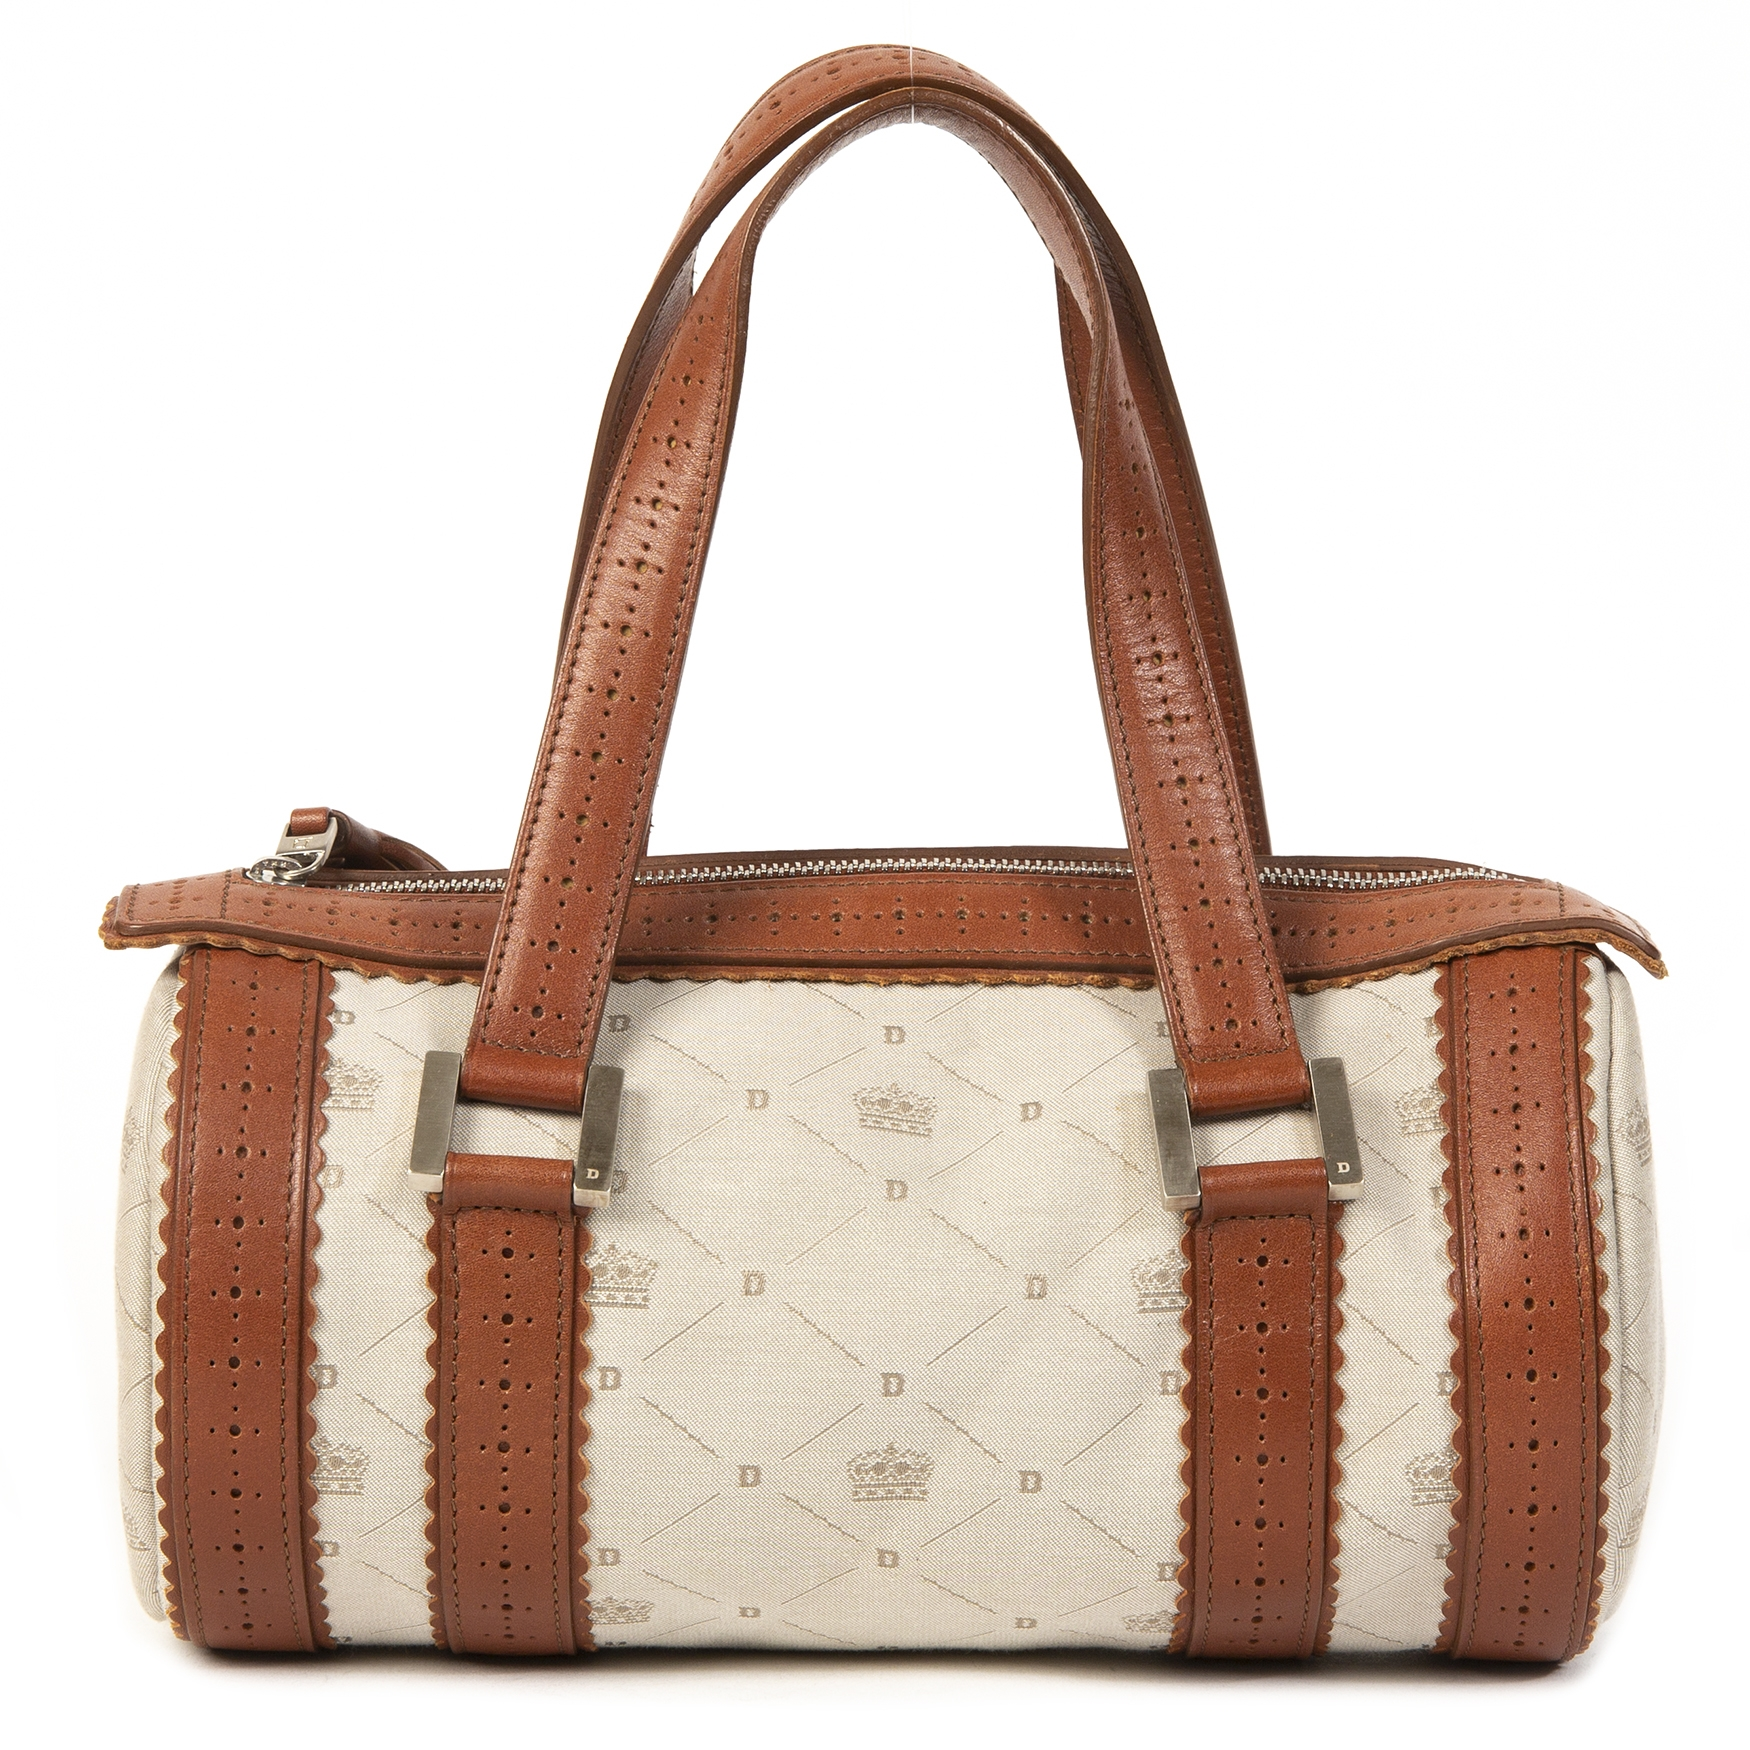 Delvaux Lily PM Fabric Bag